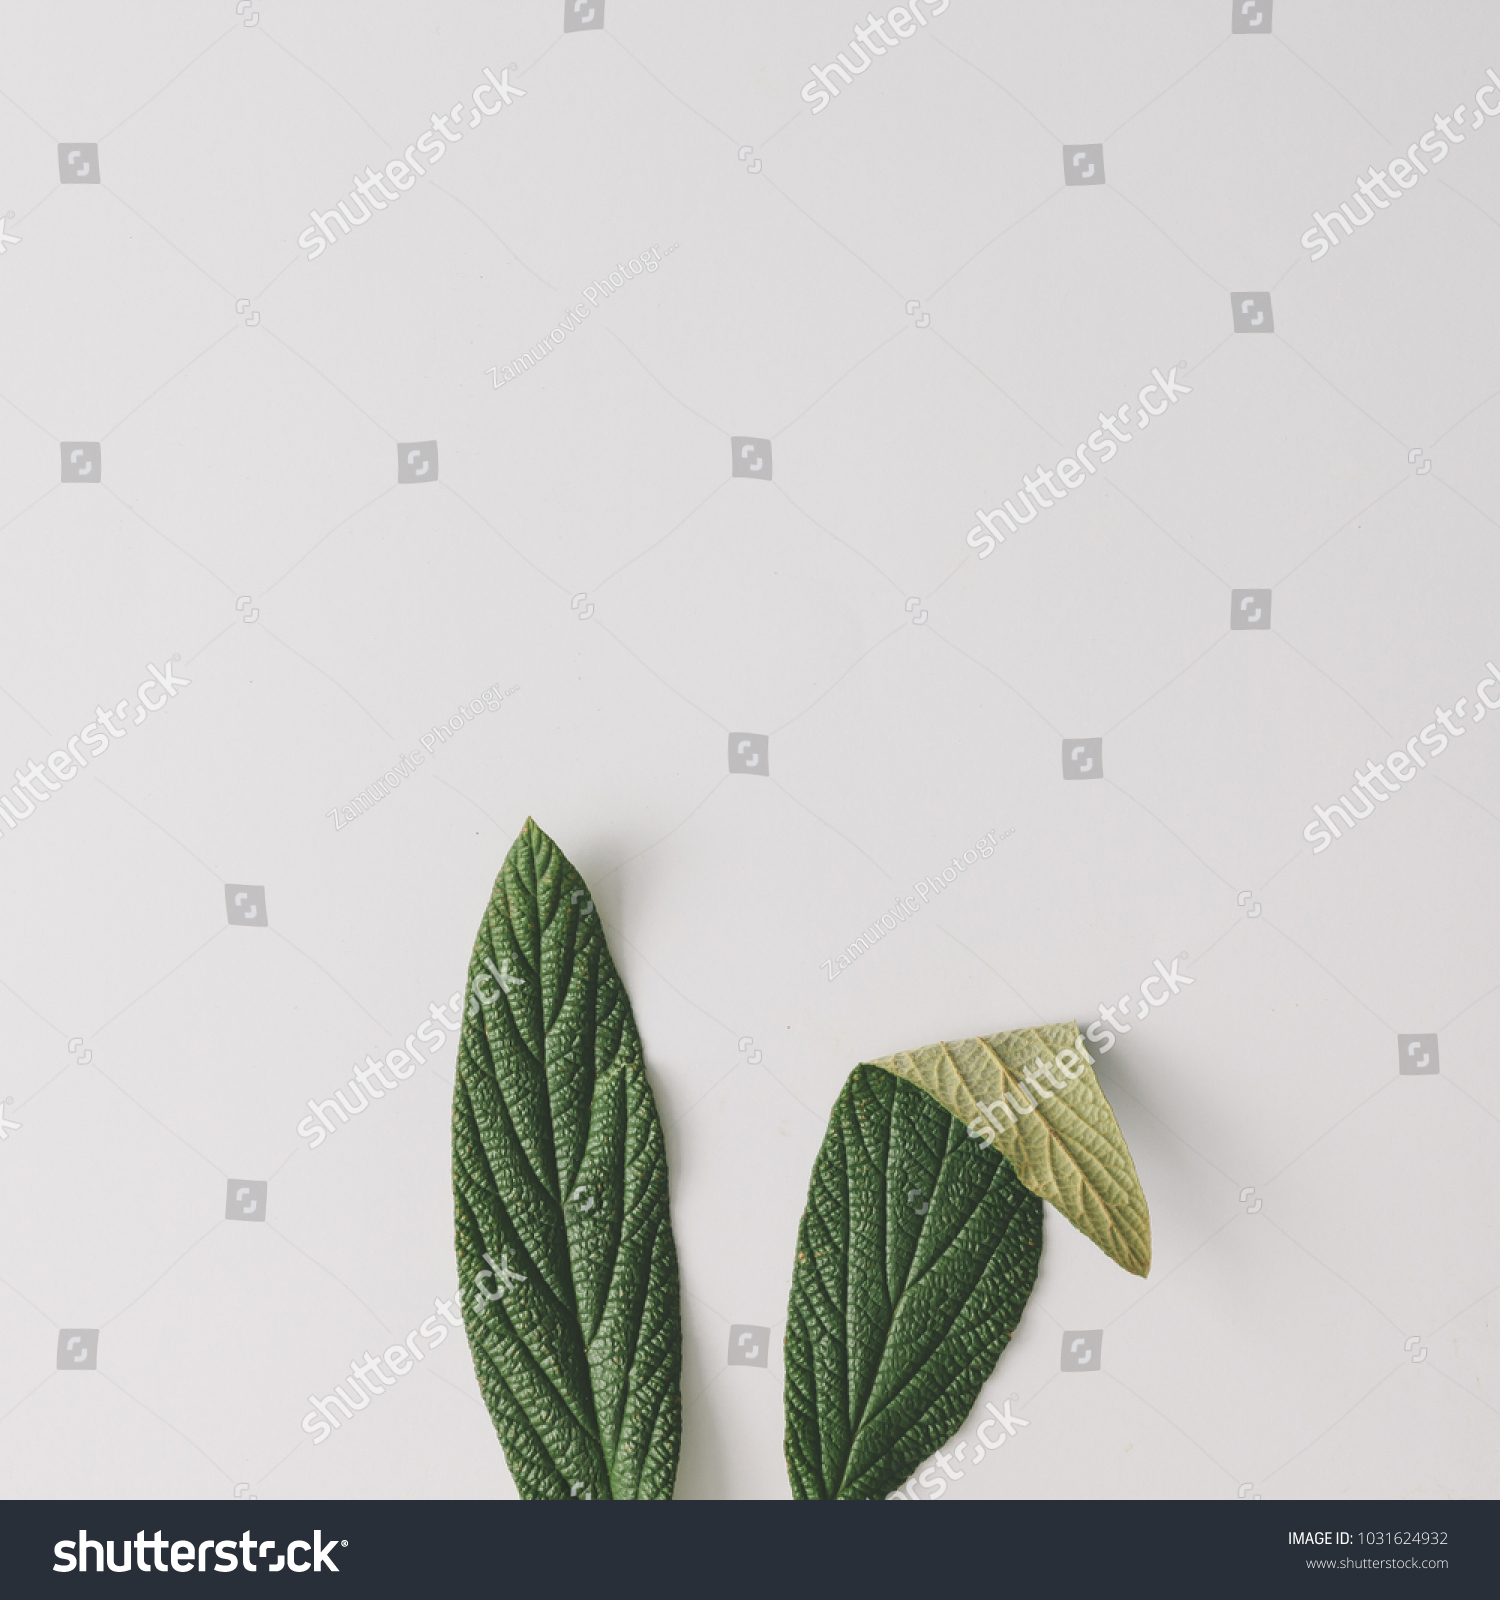 Bunny rabbit ears made of natural green leaves on bright background. Easter minimal concept. Flat lay. #1031624932 - 123PhotoFree.com